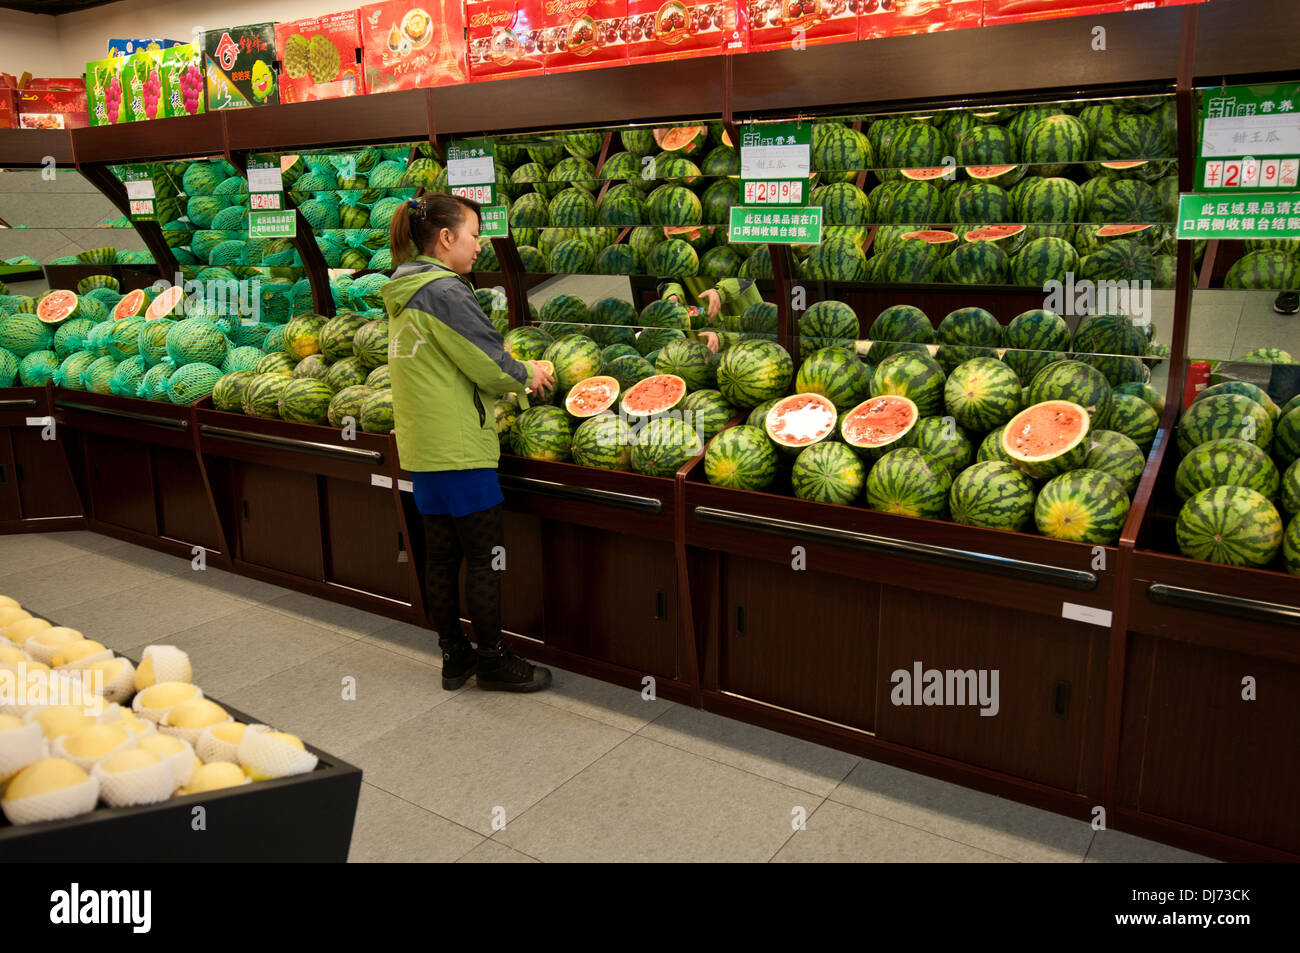 greengrocery shop in Beijing, China - Stock Image